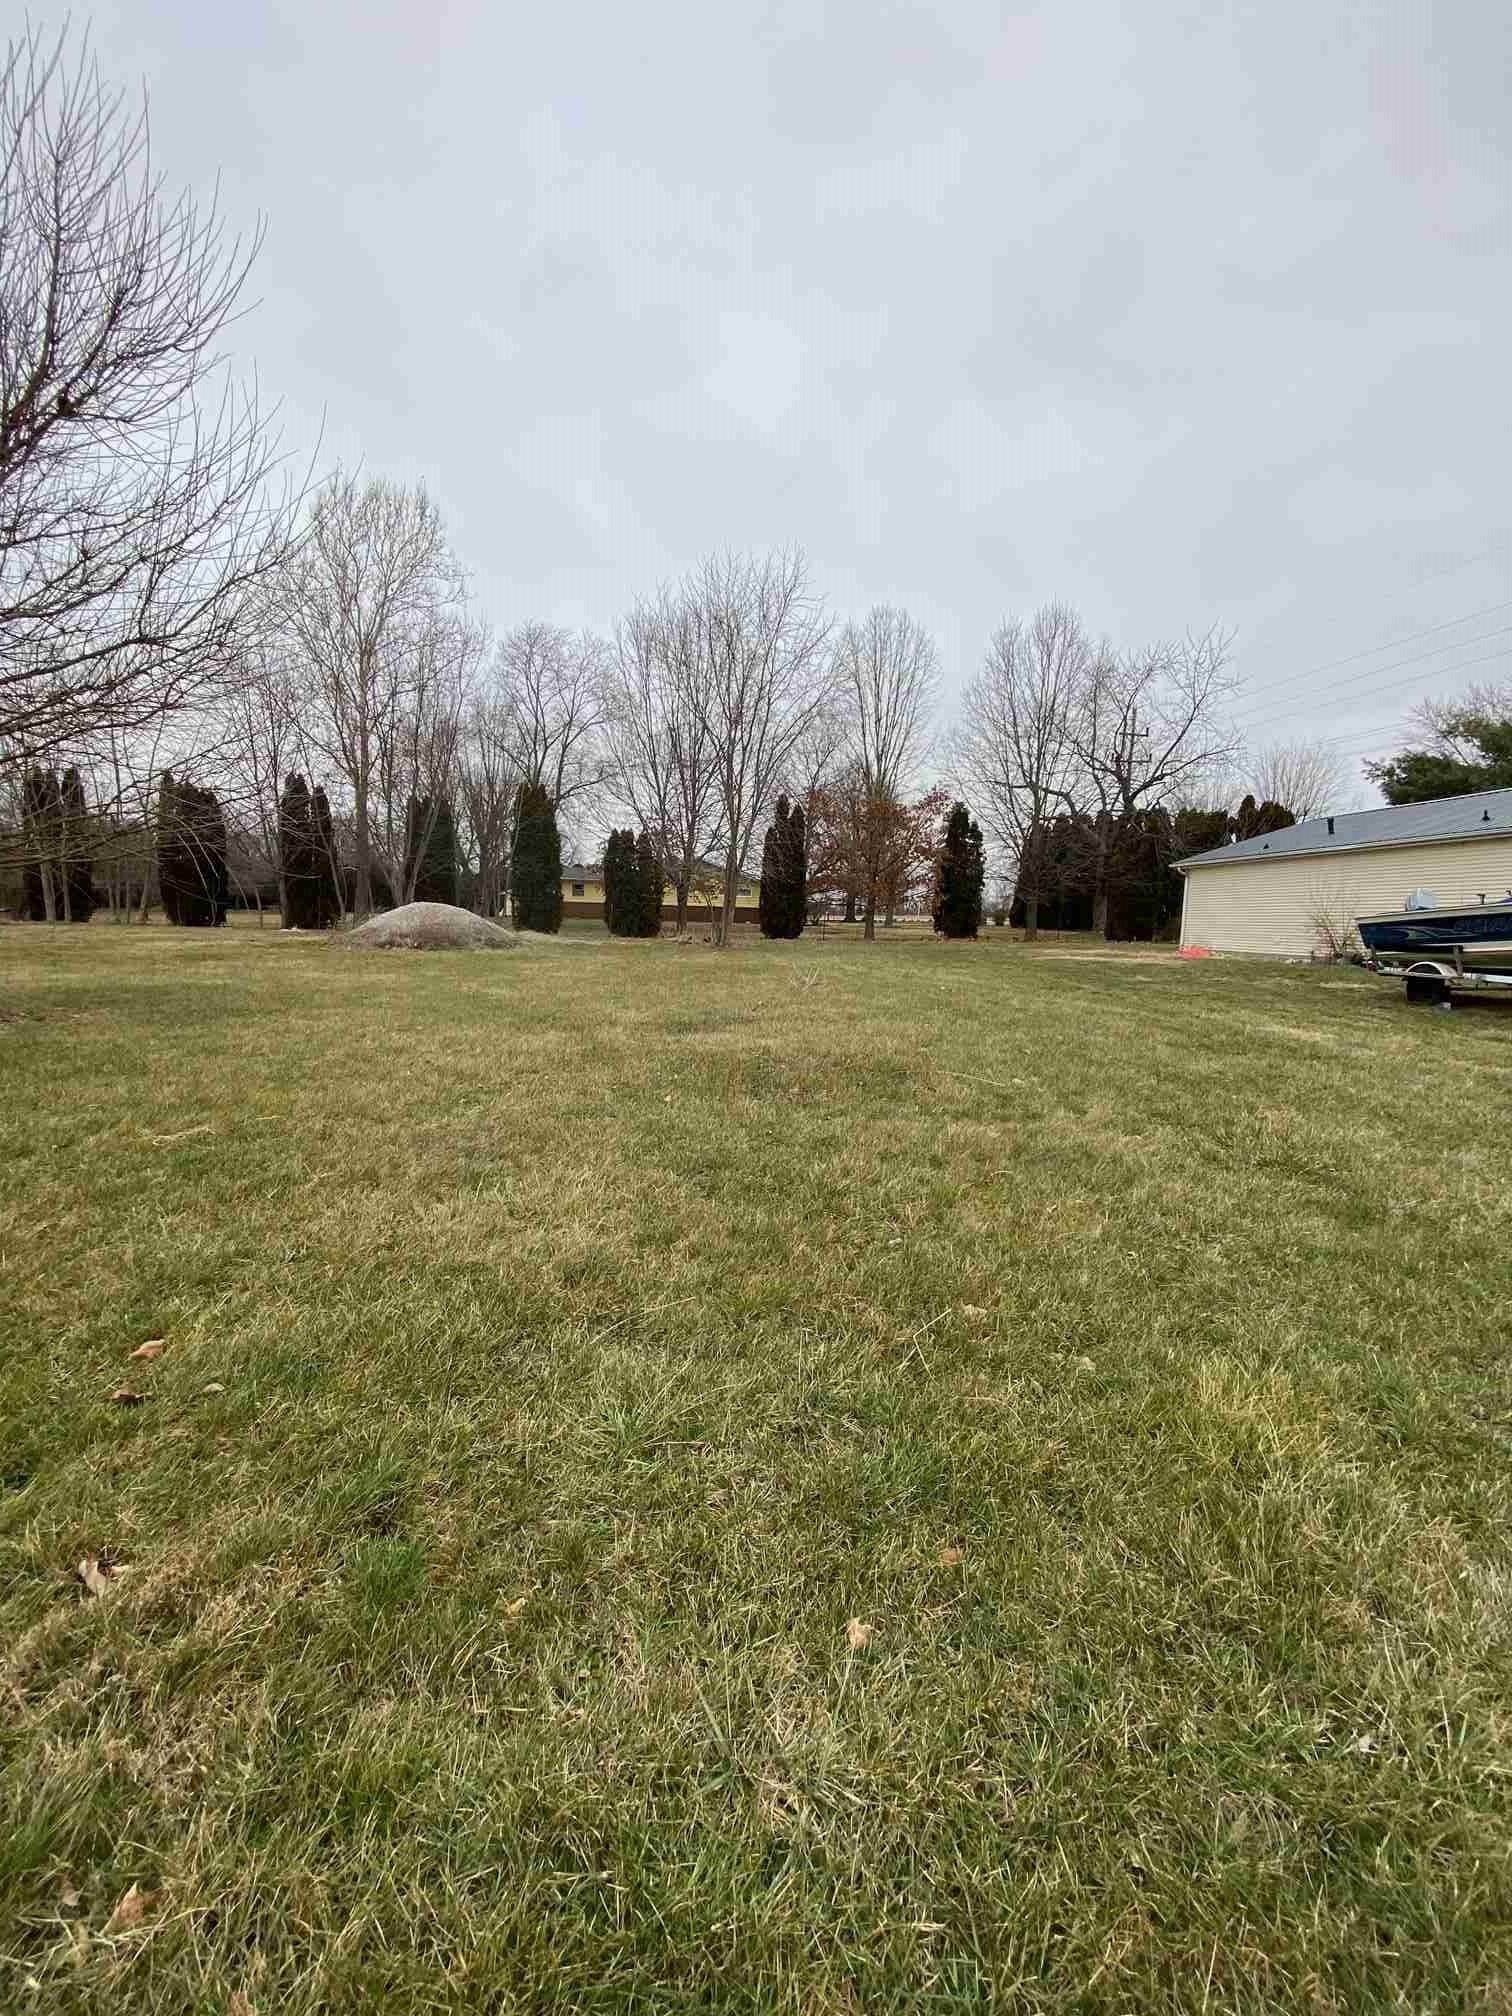 Residential Lots & Land for Sale at TBD Northern Acres Drive Lot 12 Ladoga, Indiana 47905 United States